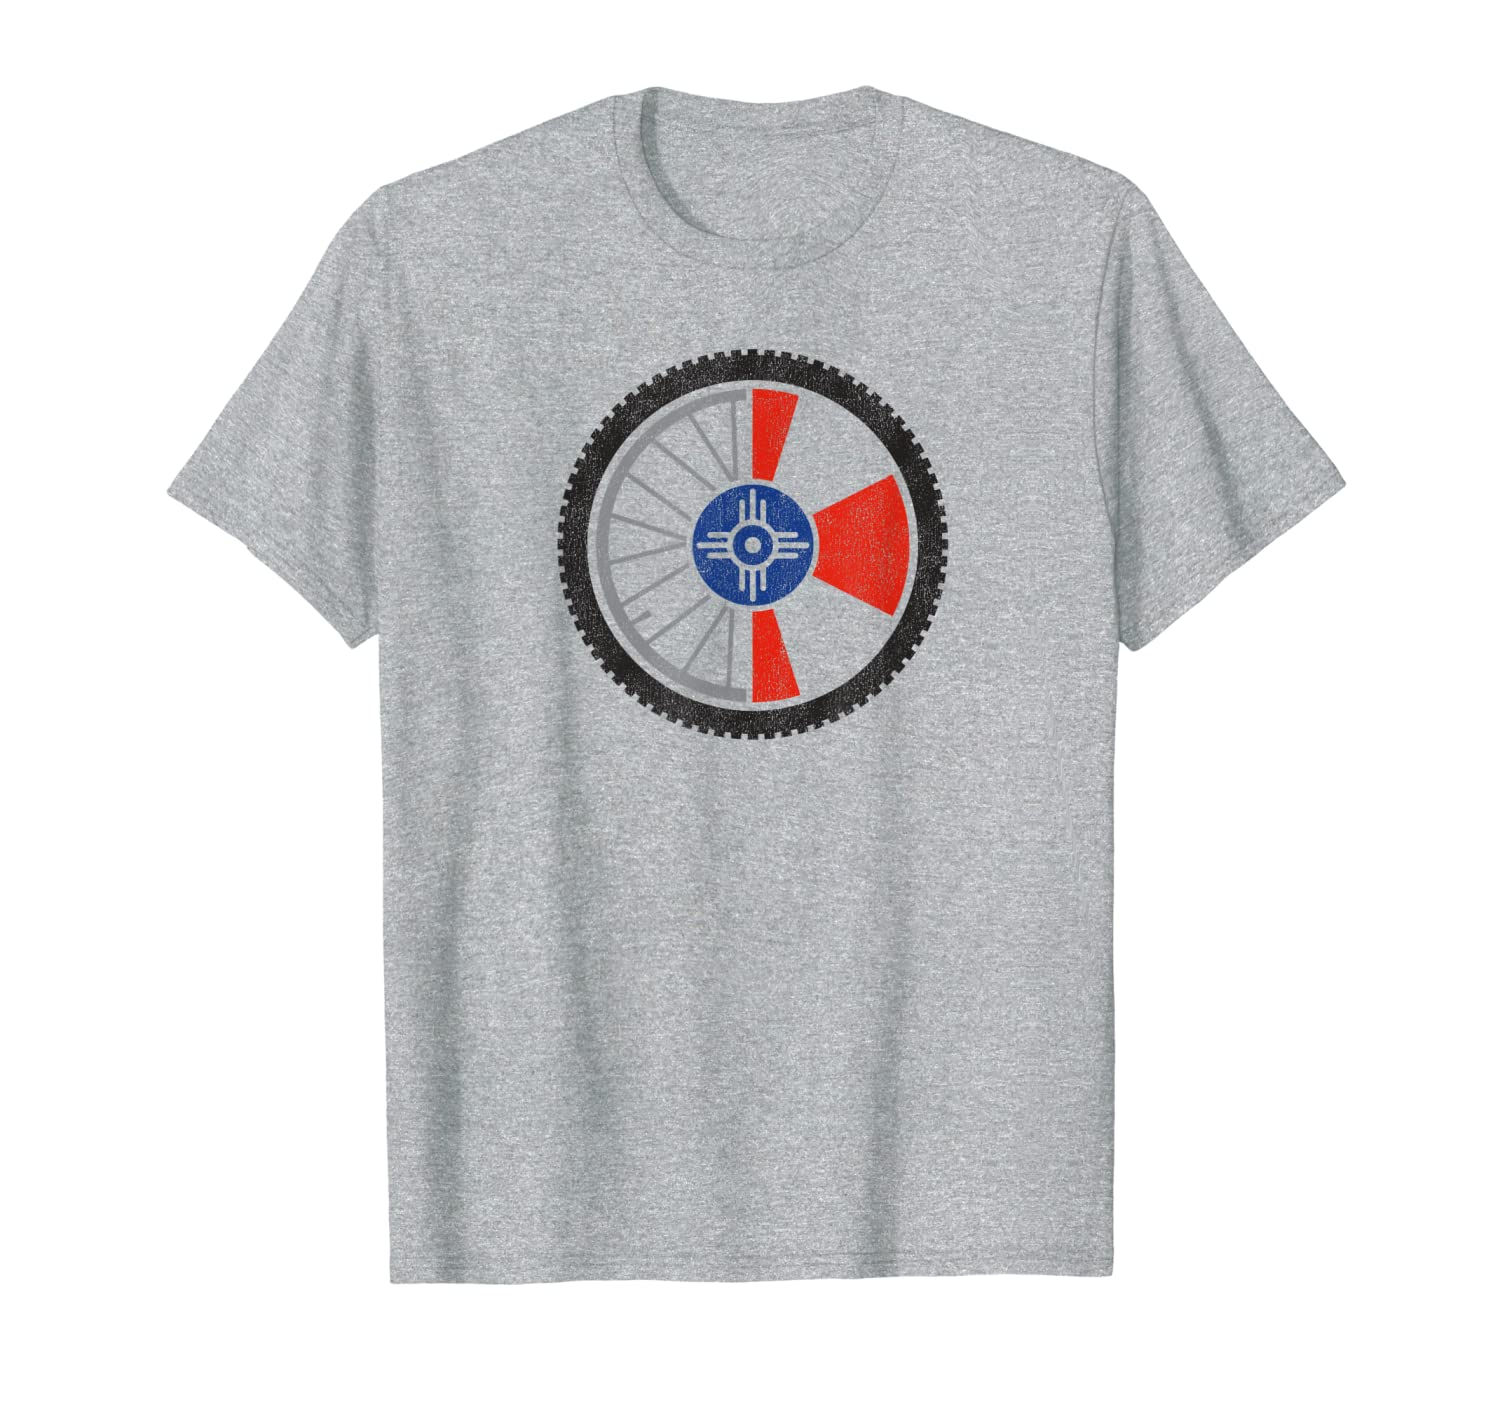 Bike ICT Wichita Trail Bicycle T-Shirt